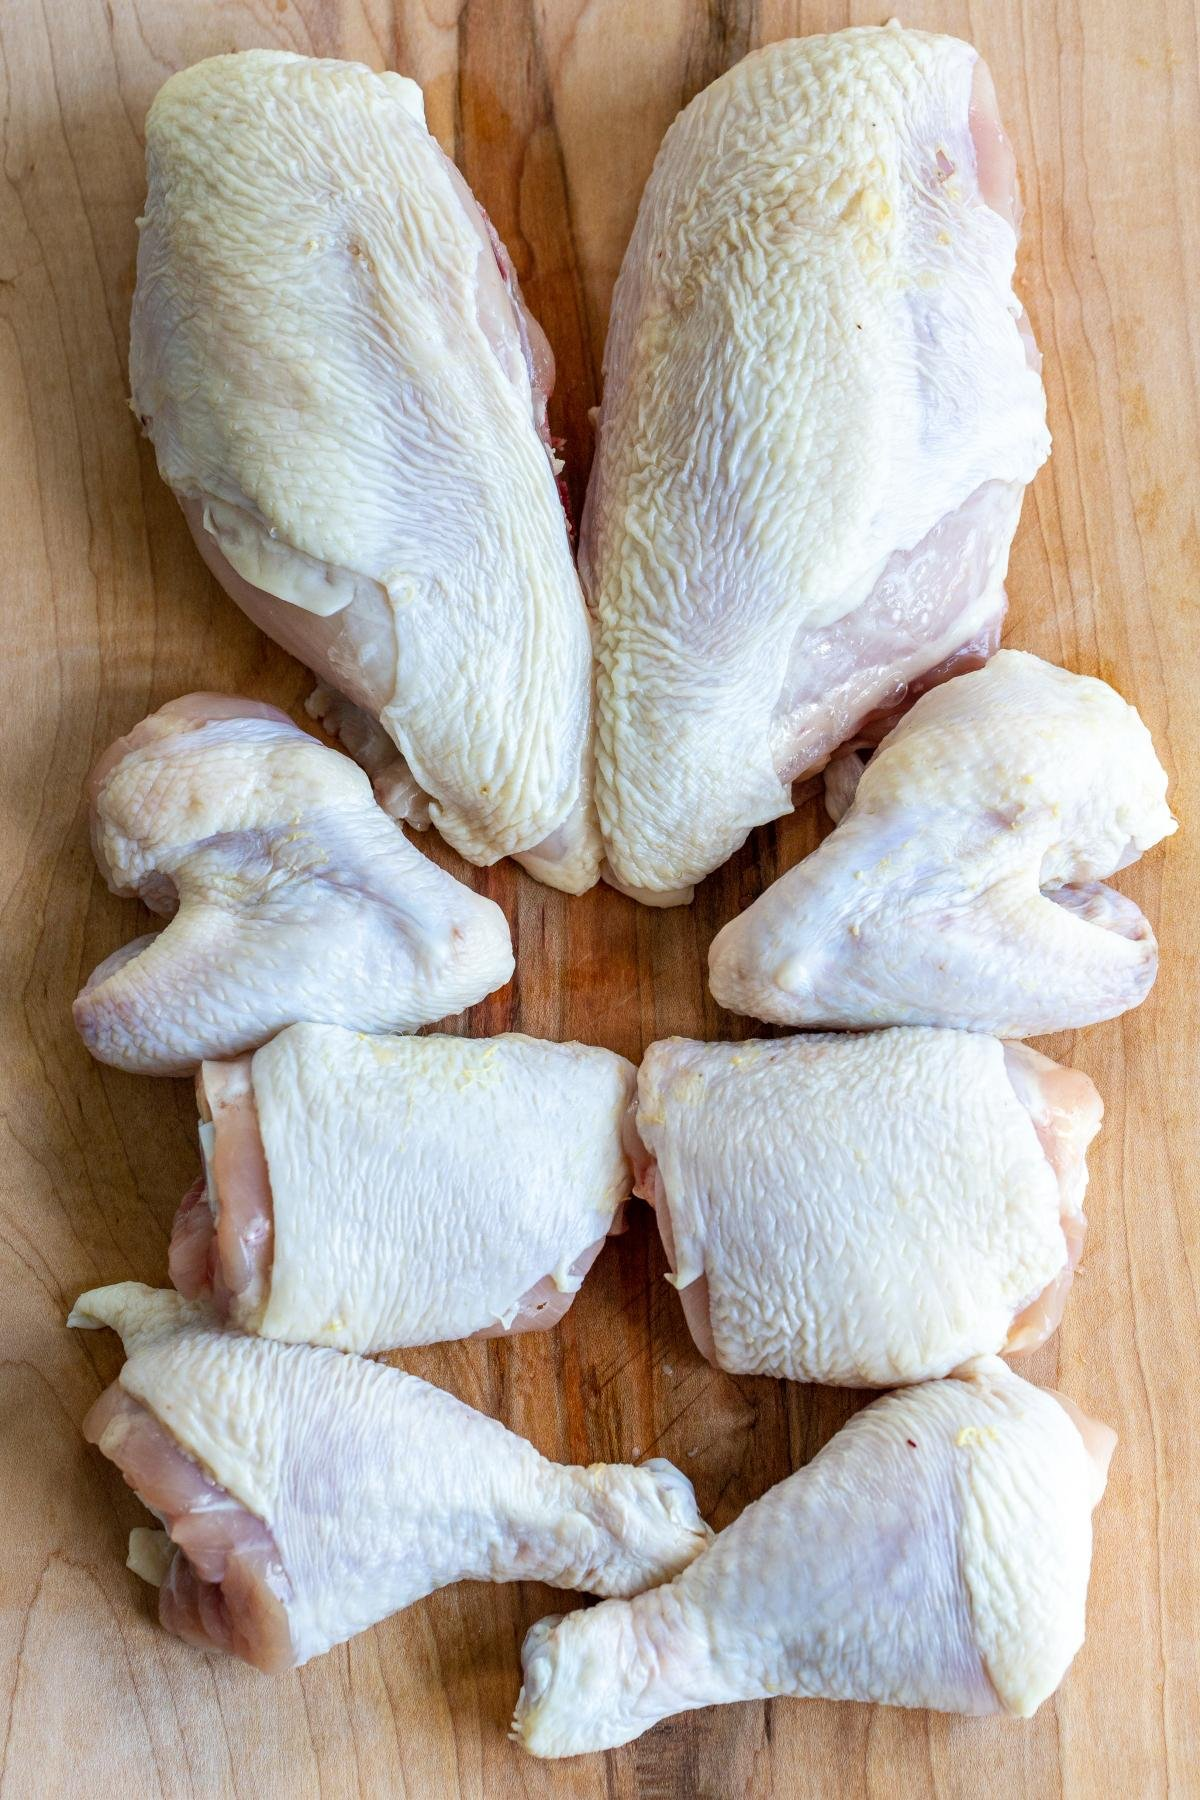 How To Cut Up A Whole Chicken Momsdish